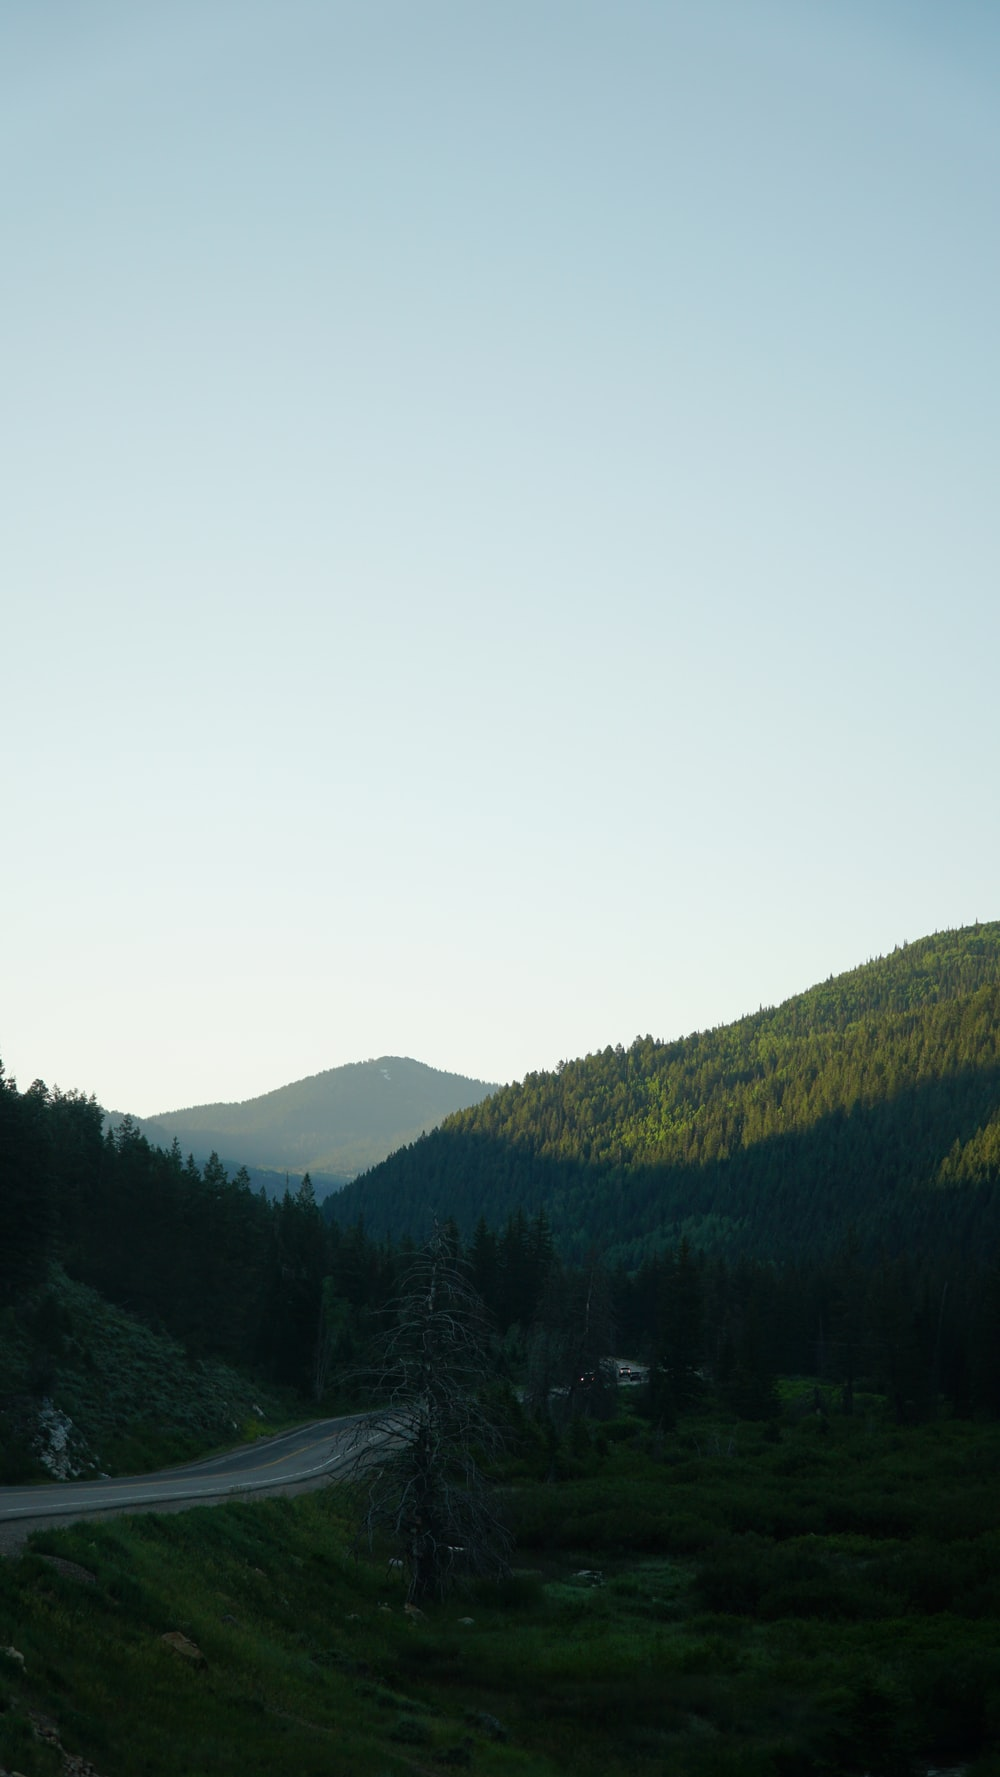 mountains covered with trees